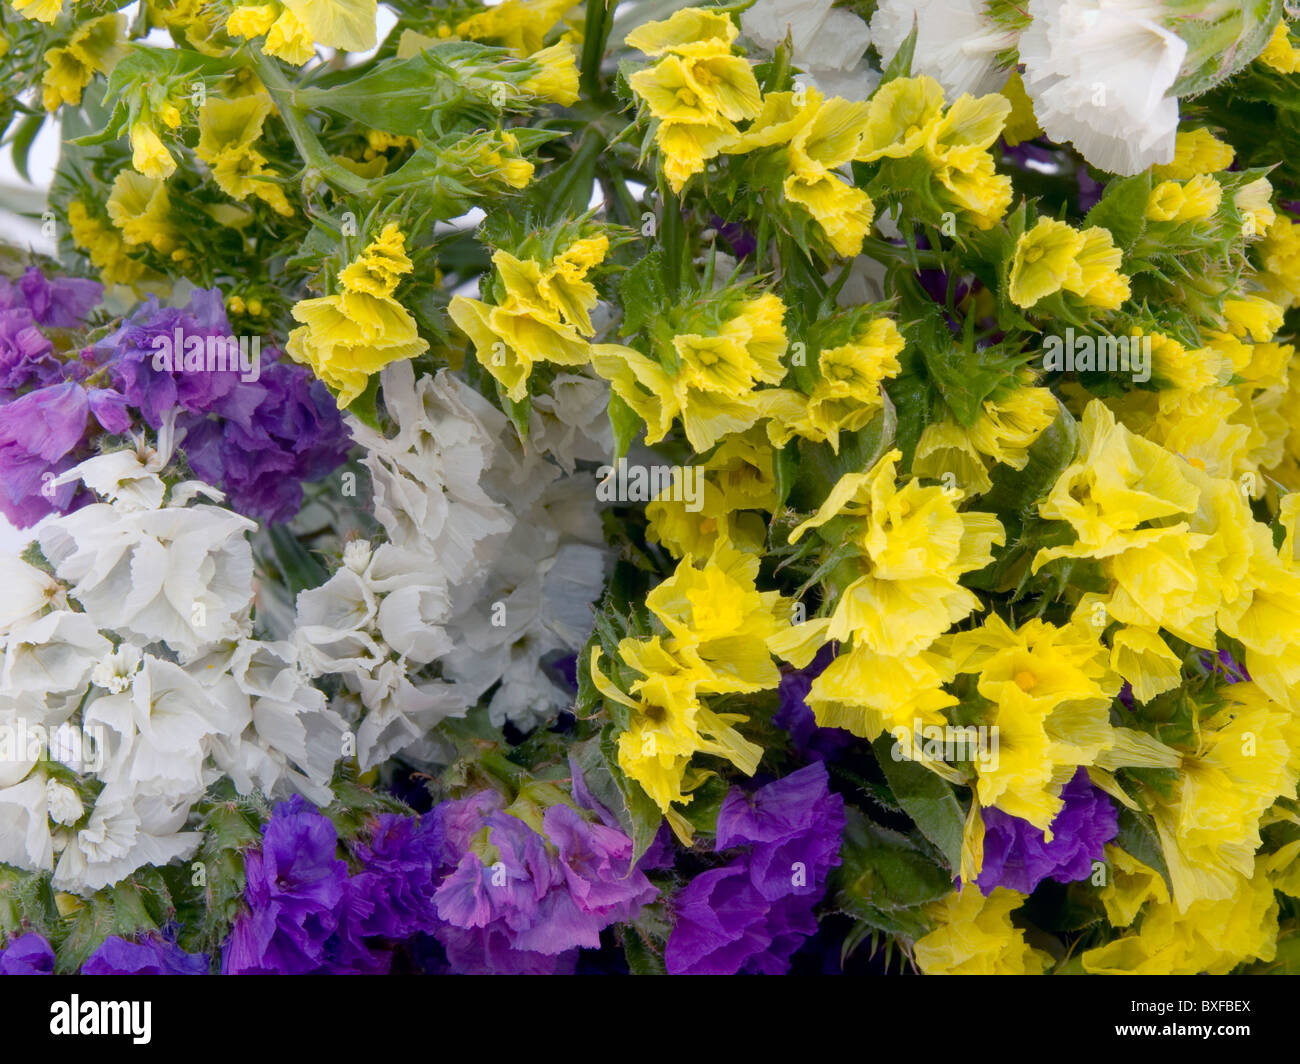 Statice stock photos statice stock images alamy closeup picture of statice flowers flowers background stock image mightylinksfo